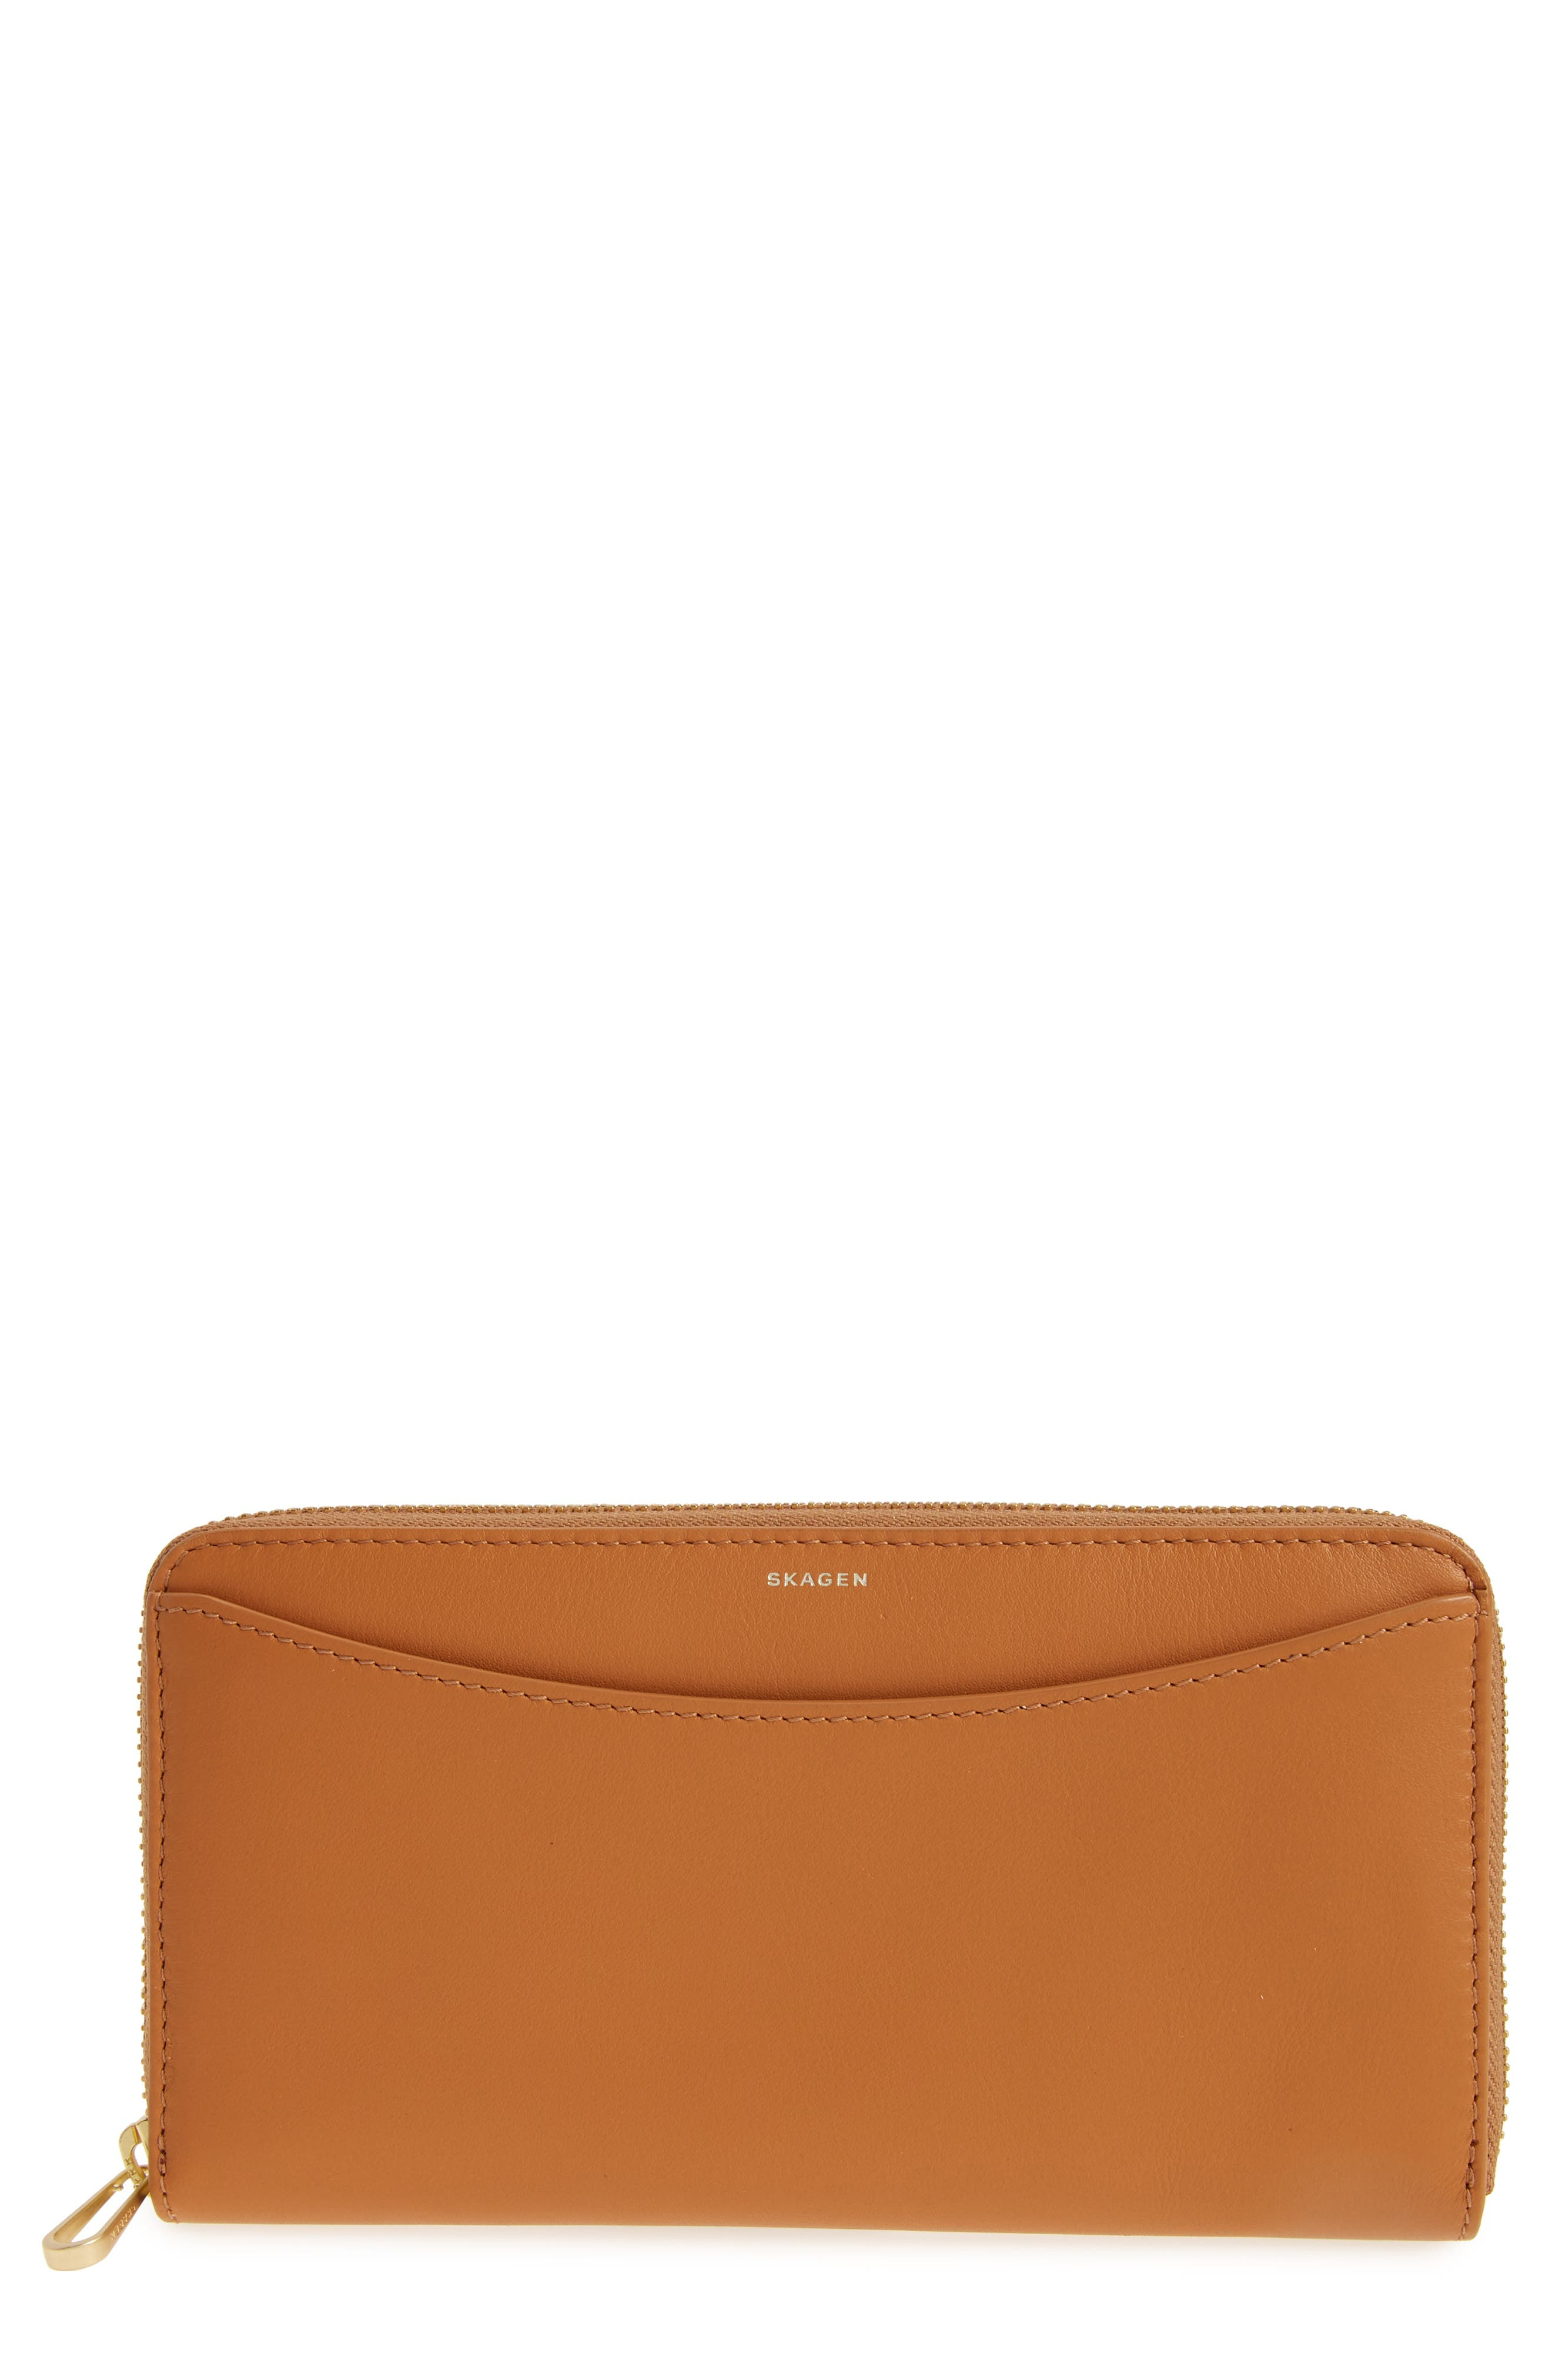 Leather Continental Wallet,                         Main,                         color, Tan